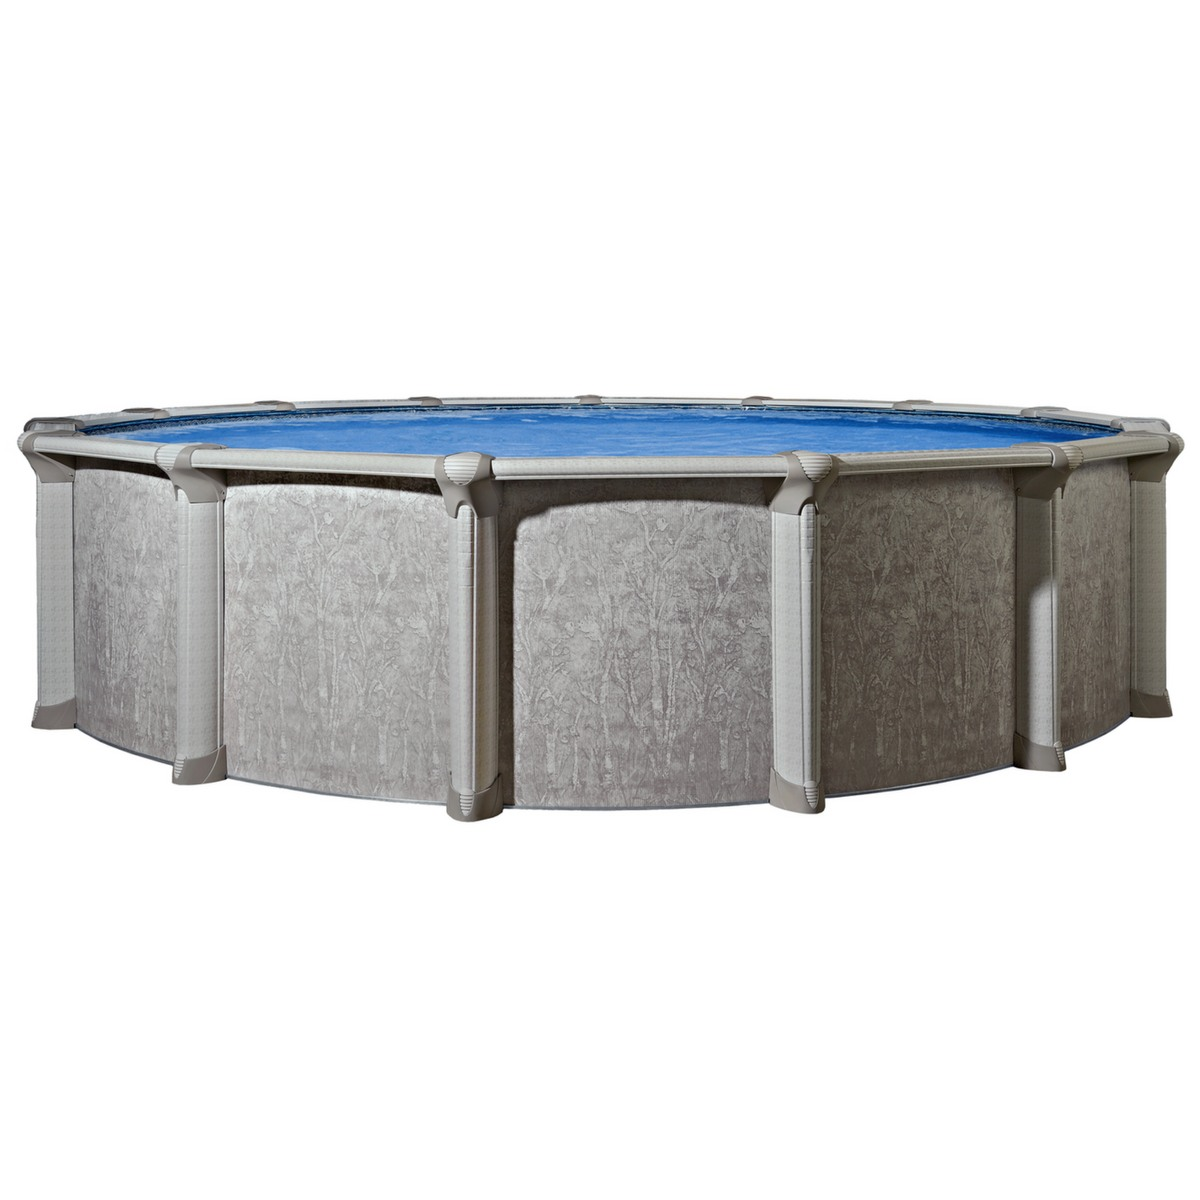 evo1200x above ground pool